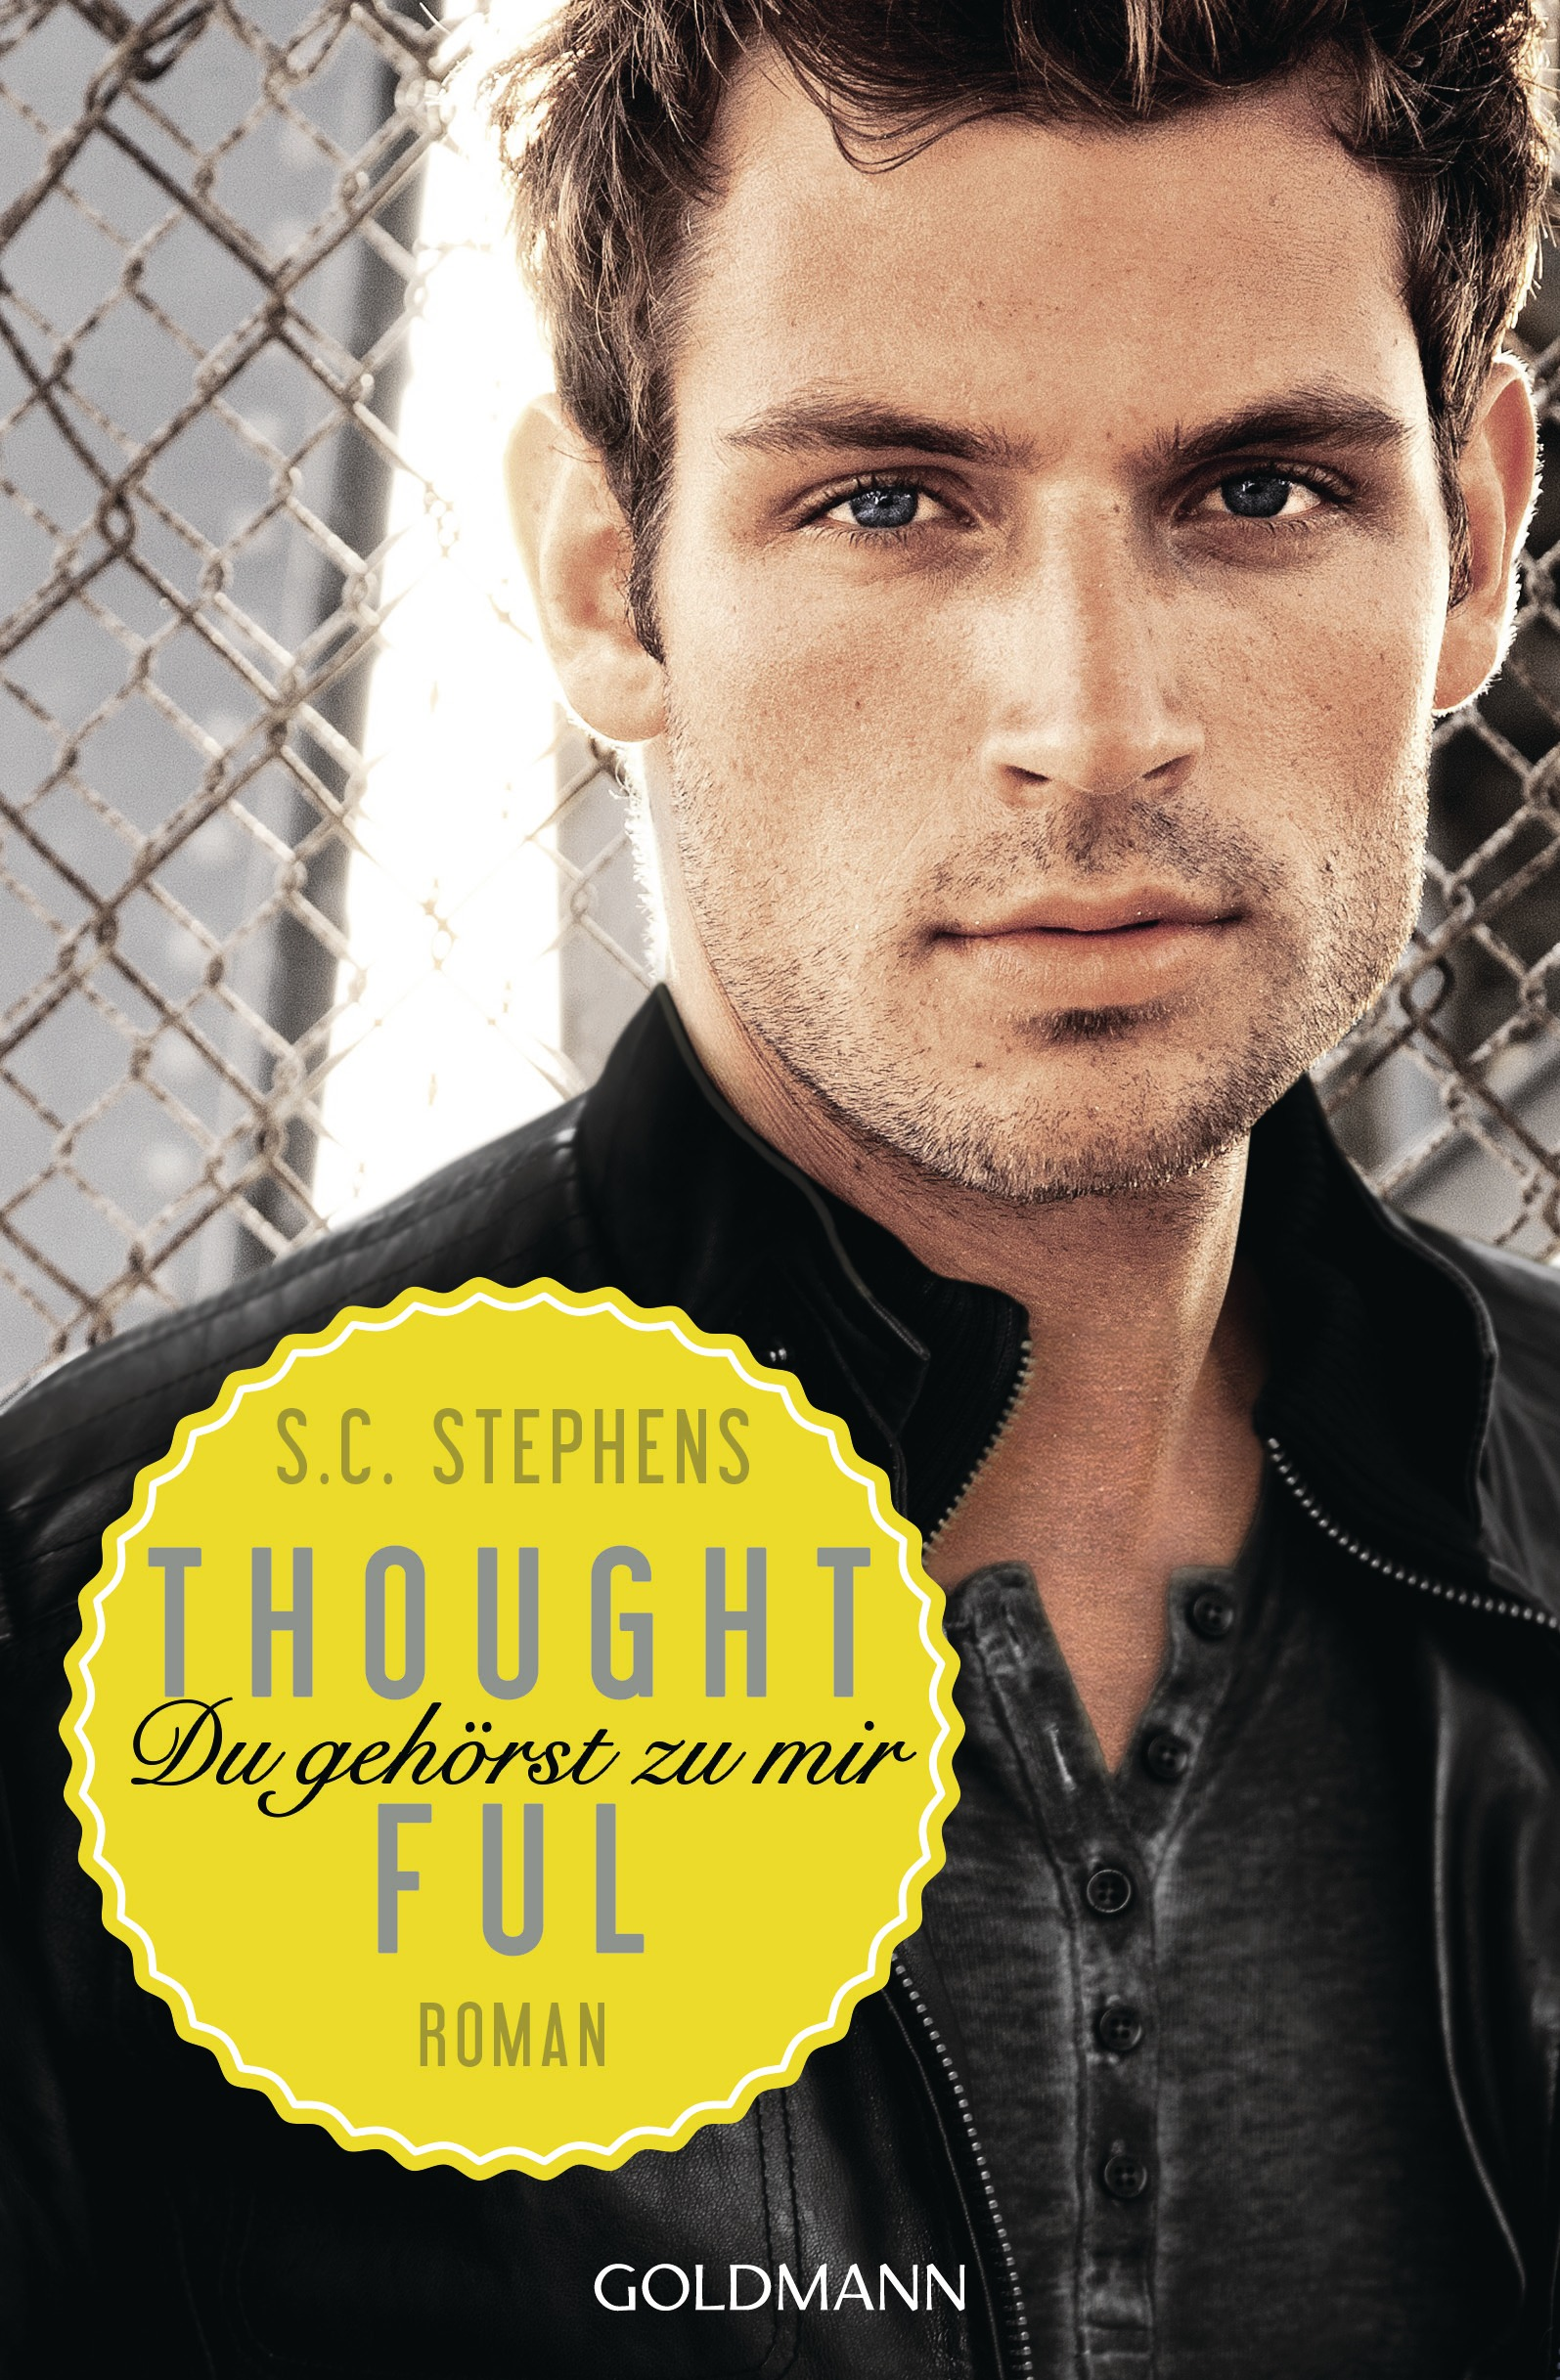 http://www.randomhouse.de/content/edition/covervoila_hires/Stephens_SCThoughtful_159284.jpg